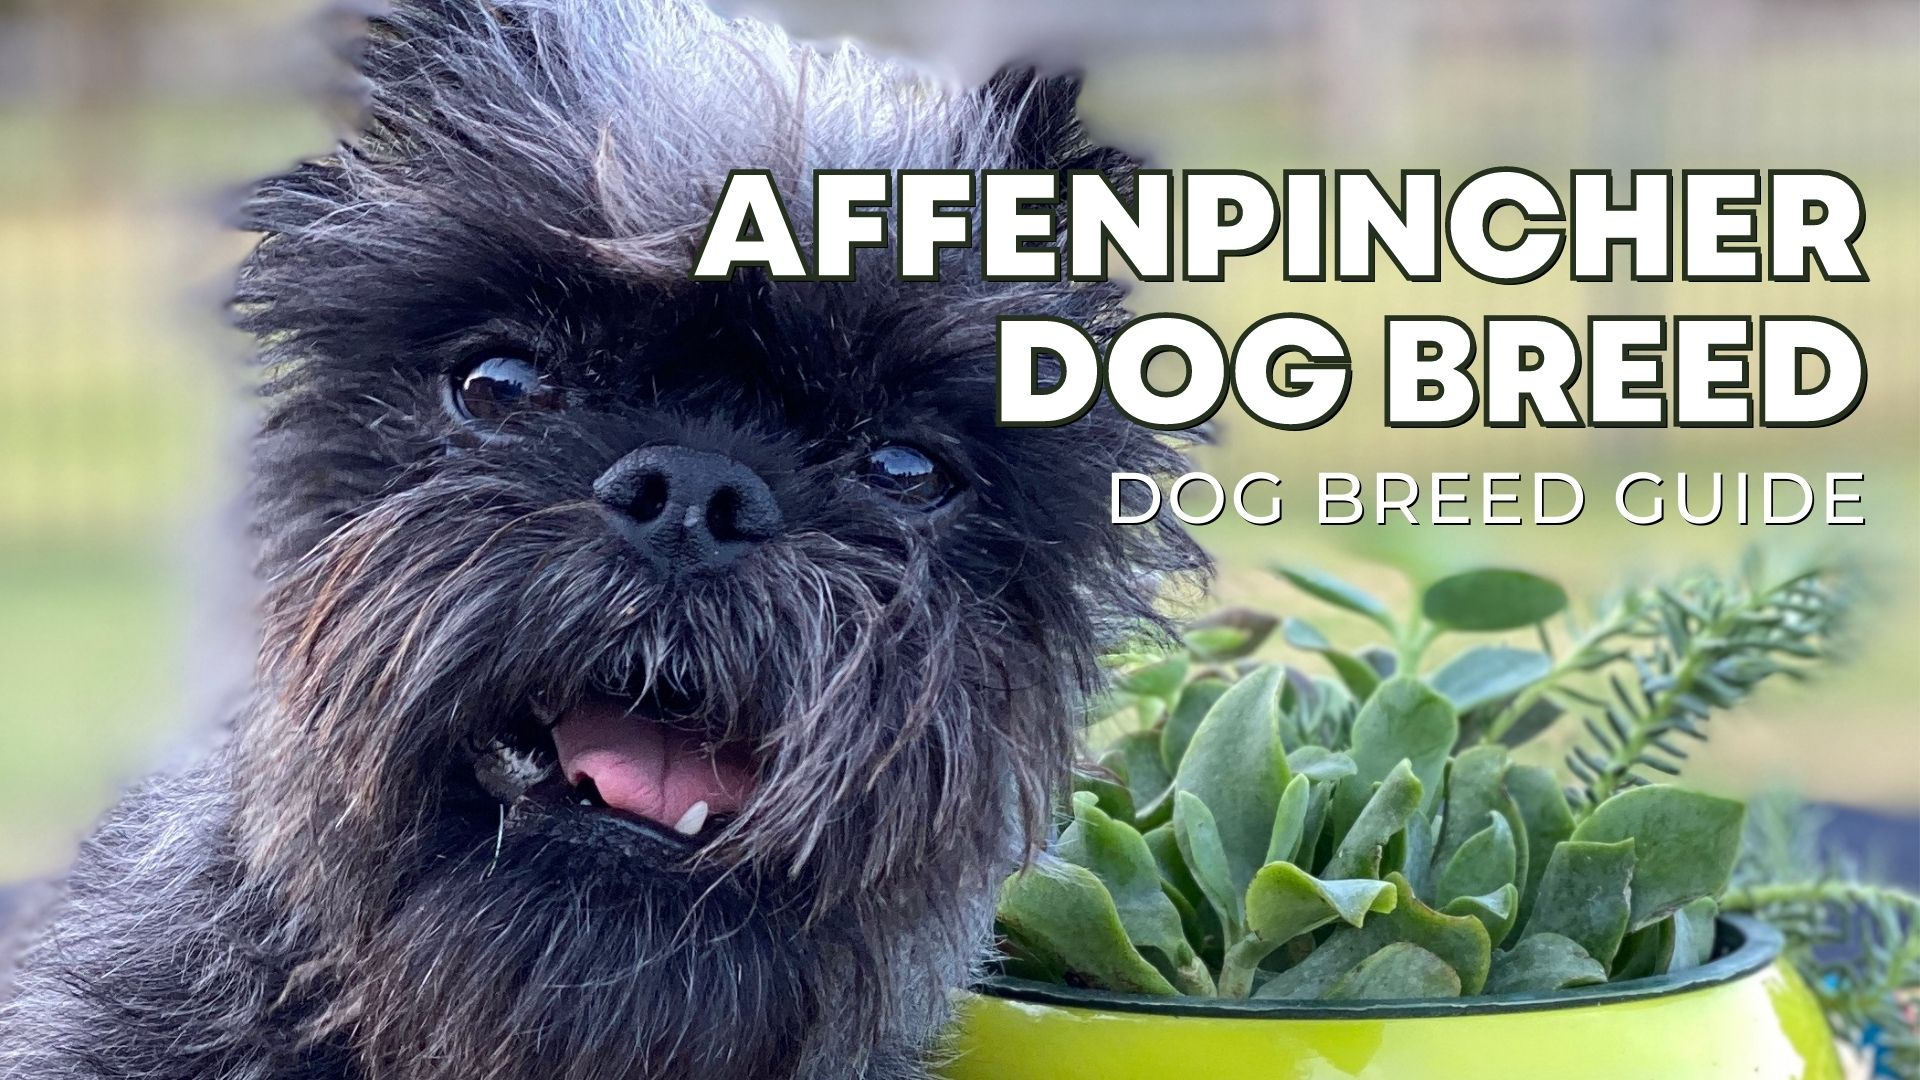 Affenpinscher Dog Breed Guide: Facts, Health & Care